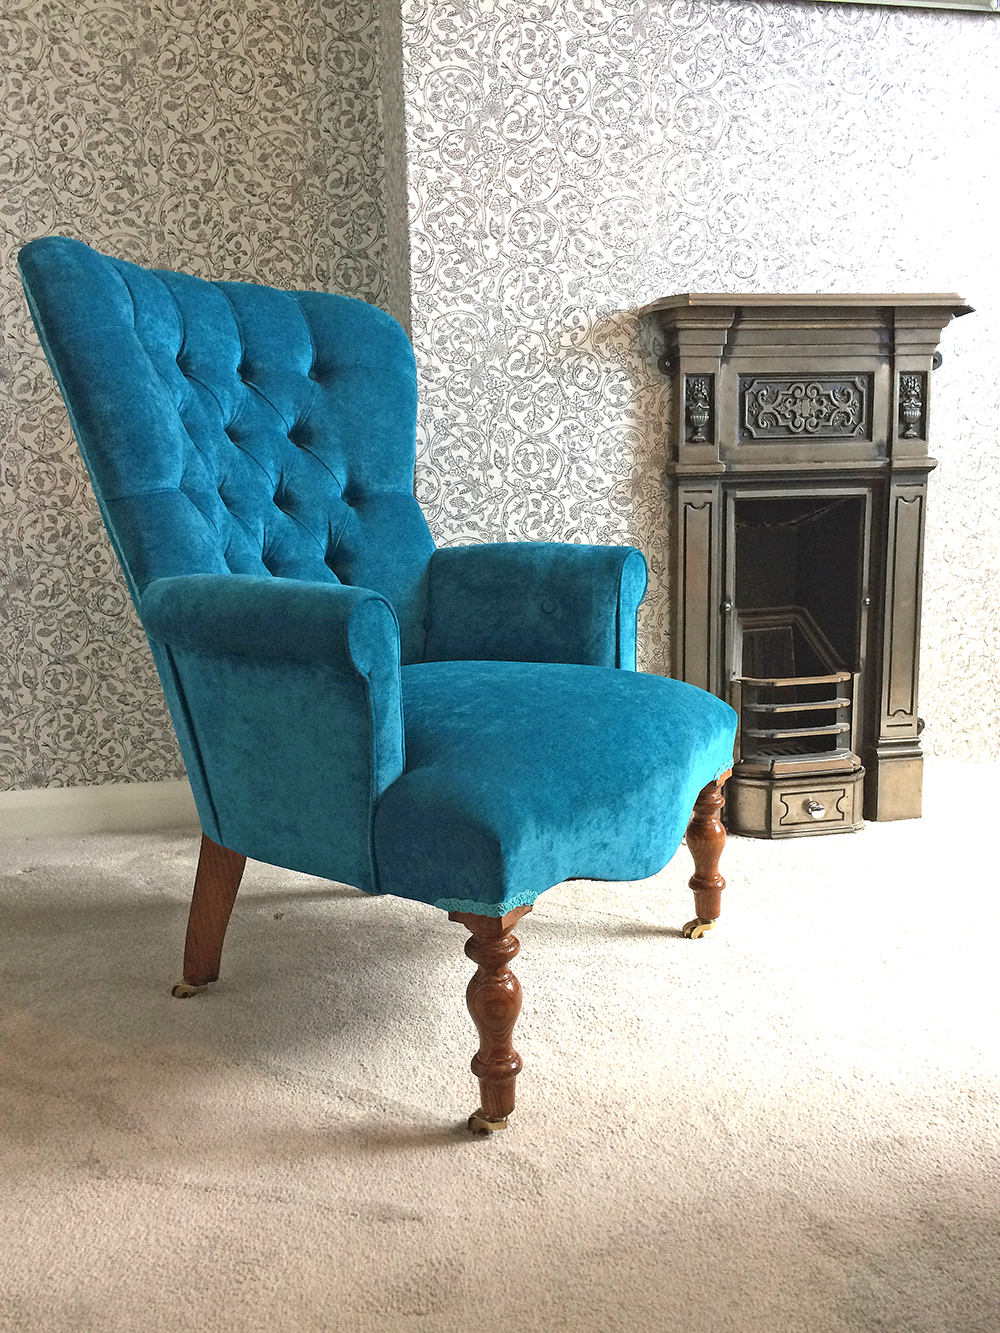 Mimi Teal Velvet Armchair Napoleonrockefeller Vintage And Retro Furniture Bespoke Hand Crafted Chairs And Seating